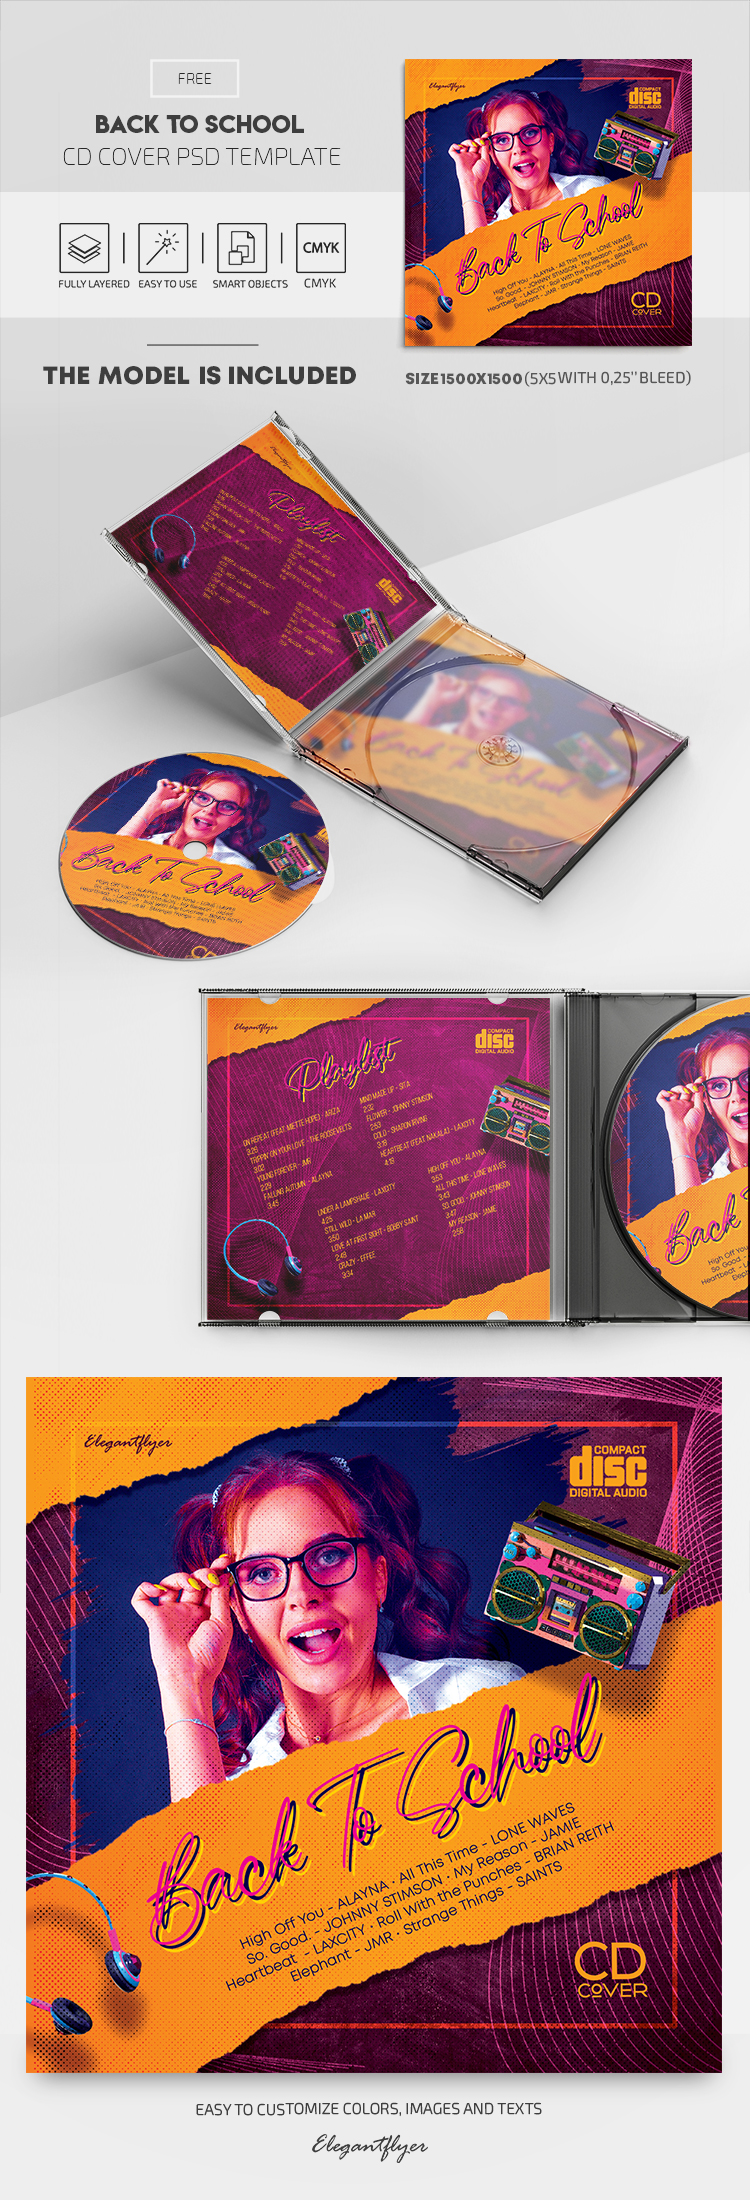 Back to School – Free CD Cover PSD Template